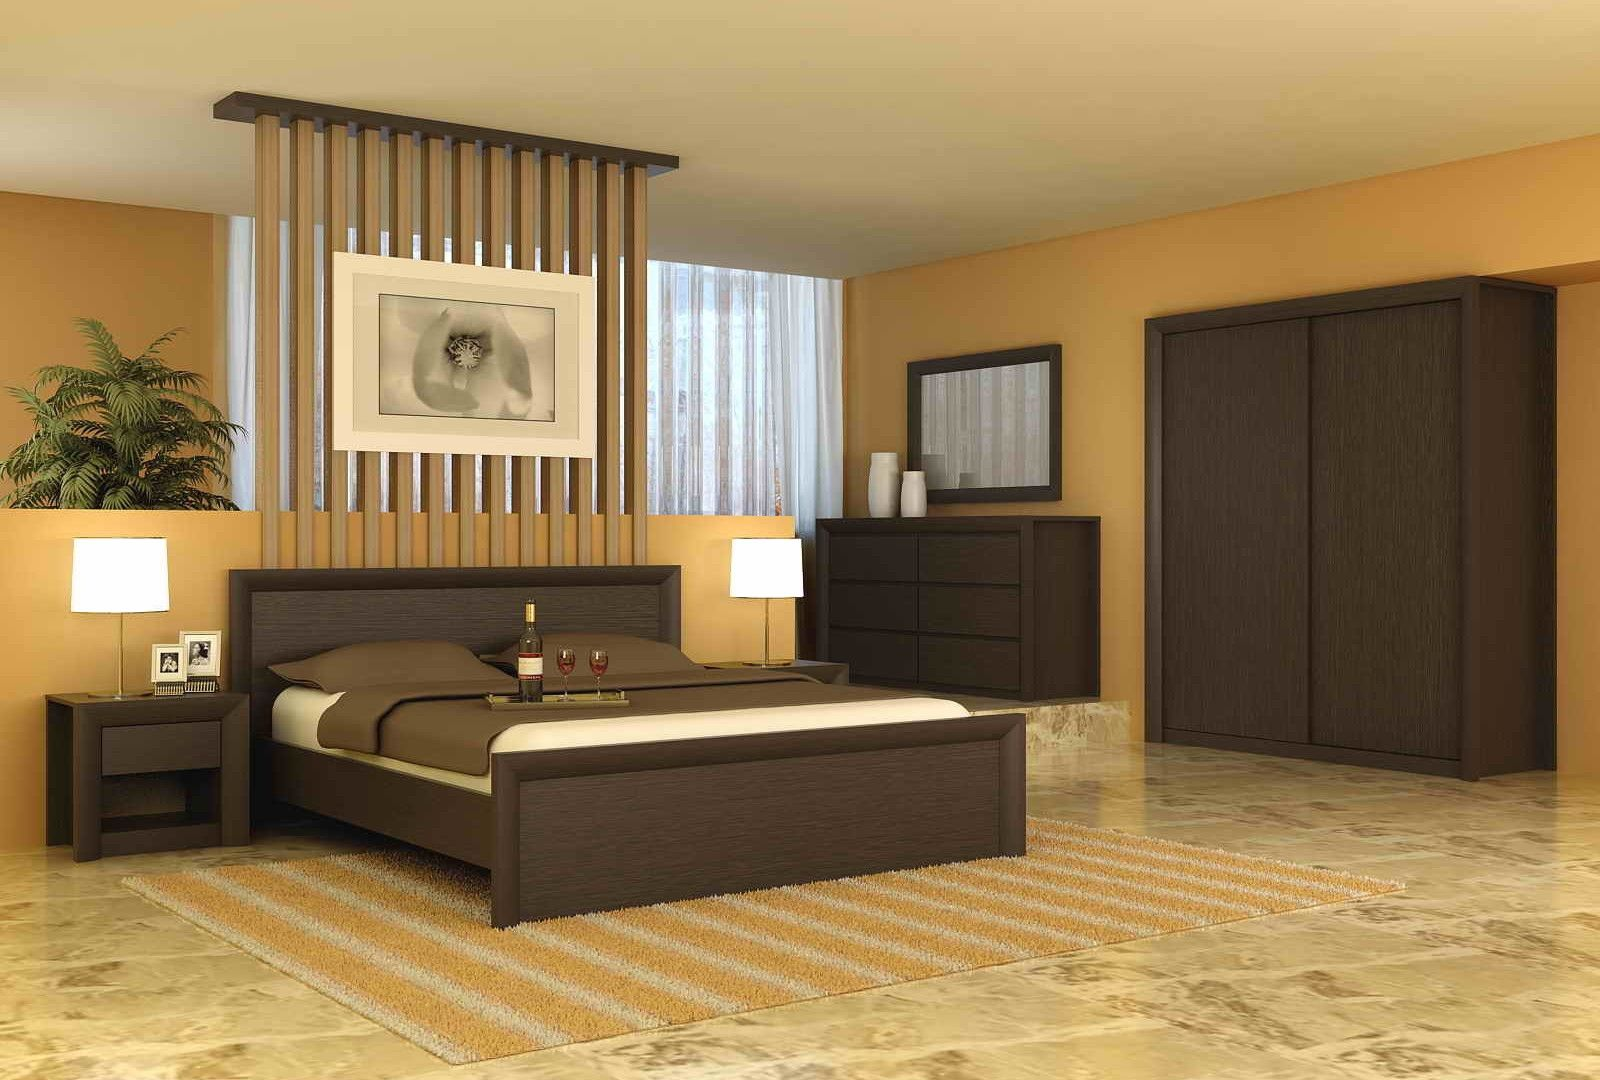 Simple Bedroom Wall Wardrobe Design Simple Modern Bedroom